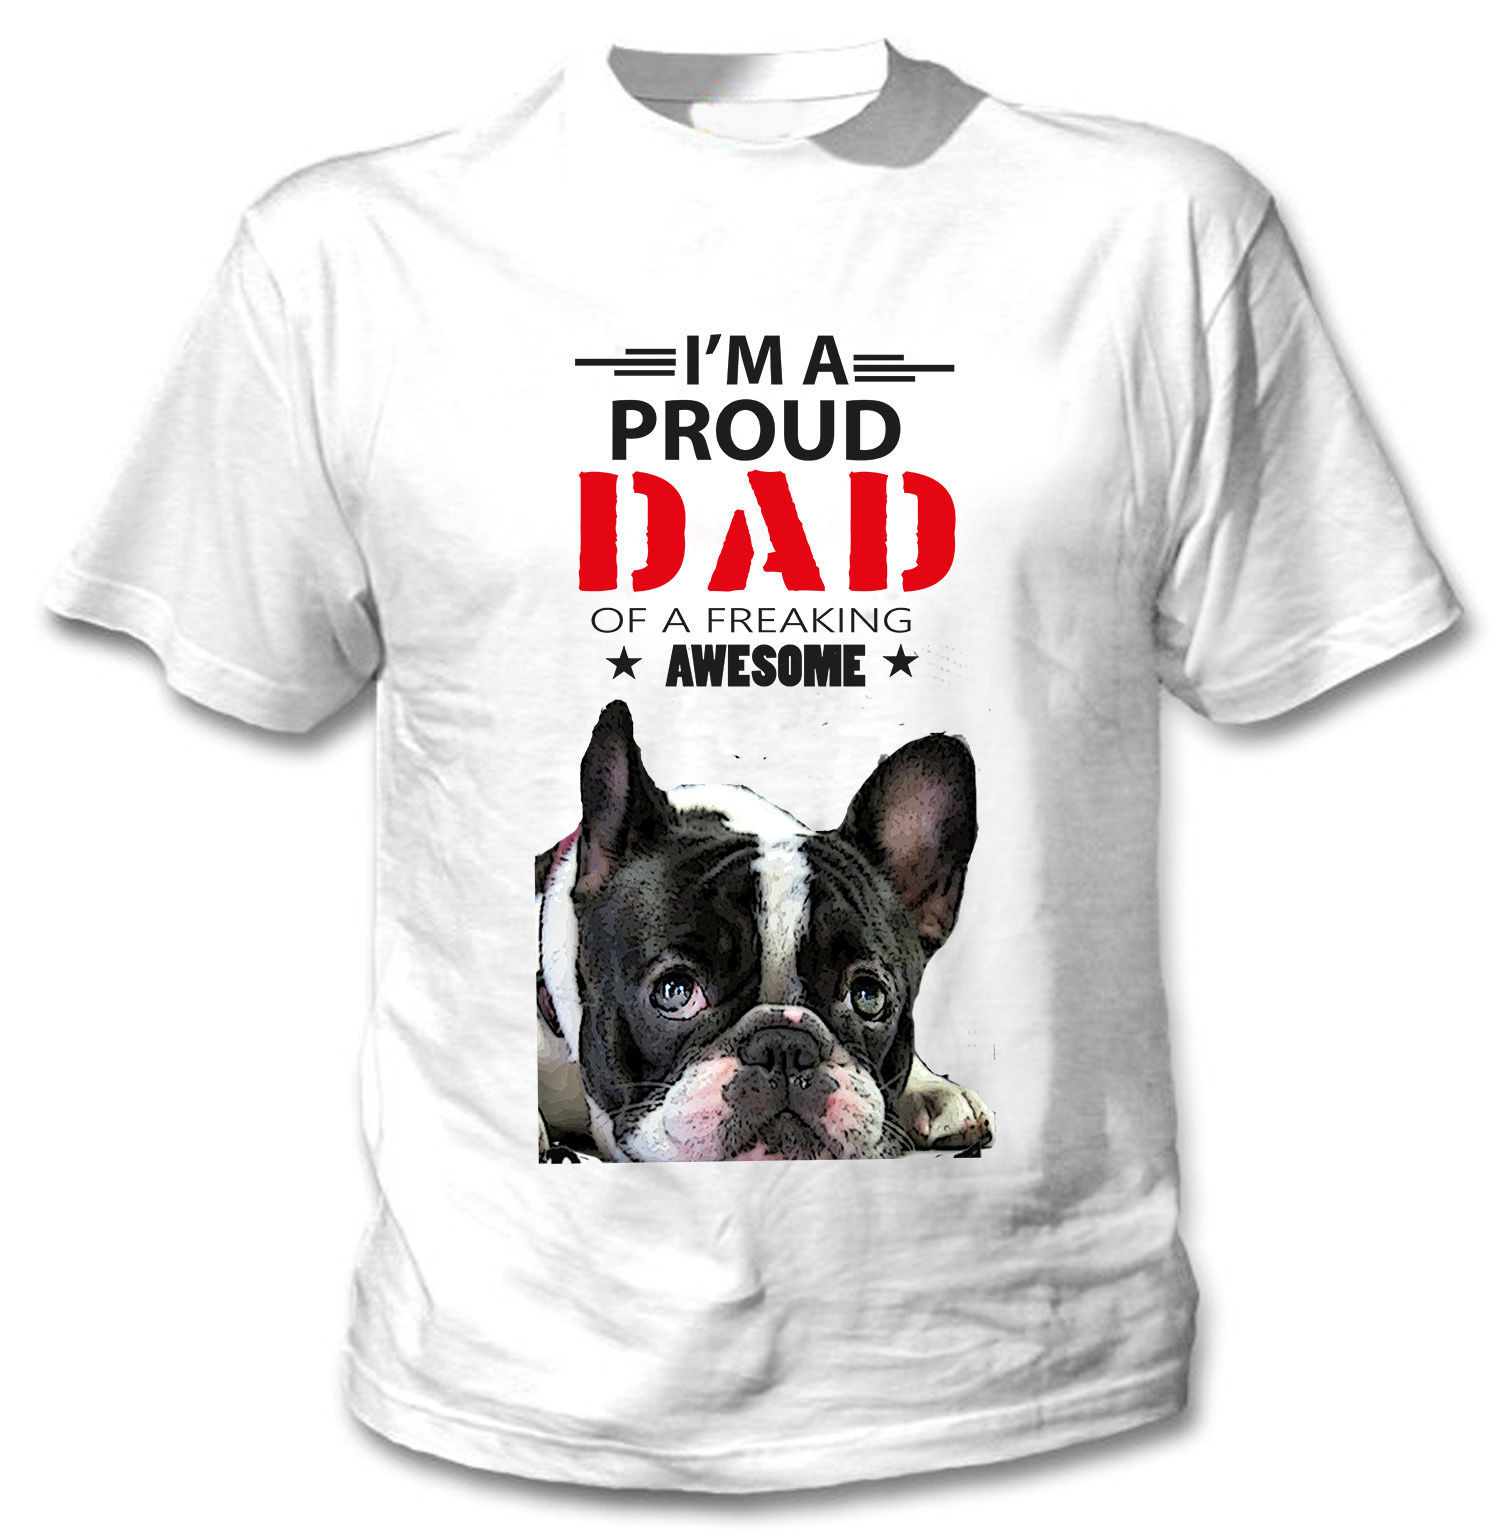 FRENCH BULLDOG 2 - IM A PROUD DAD - NEW COTTON WHITE TSHIRT